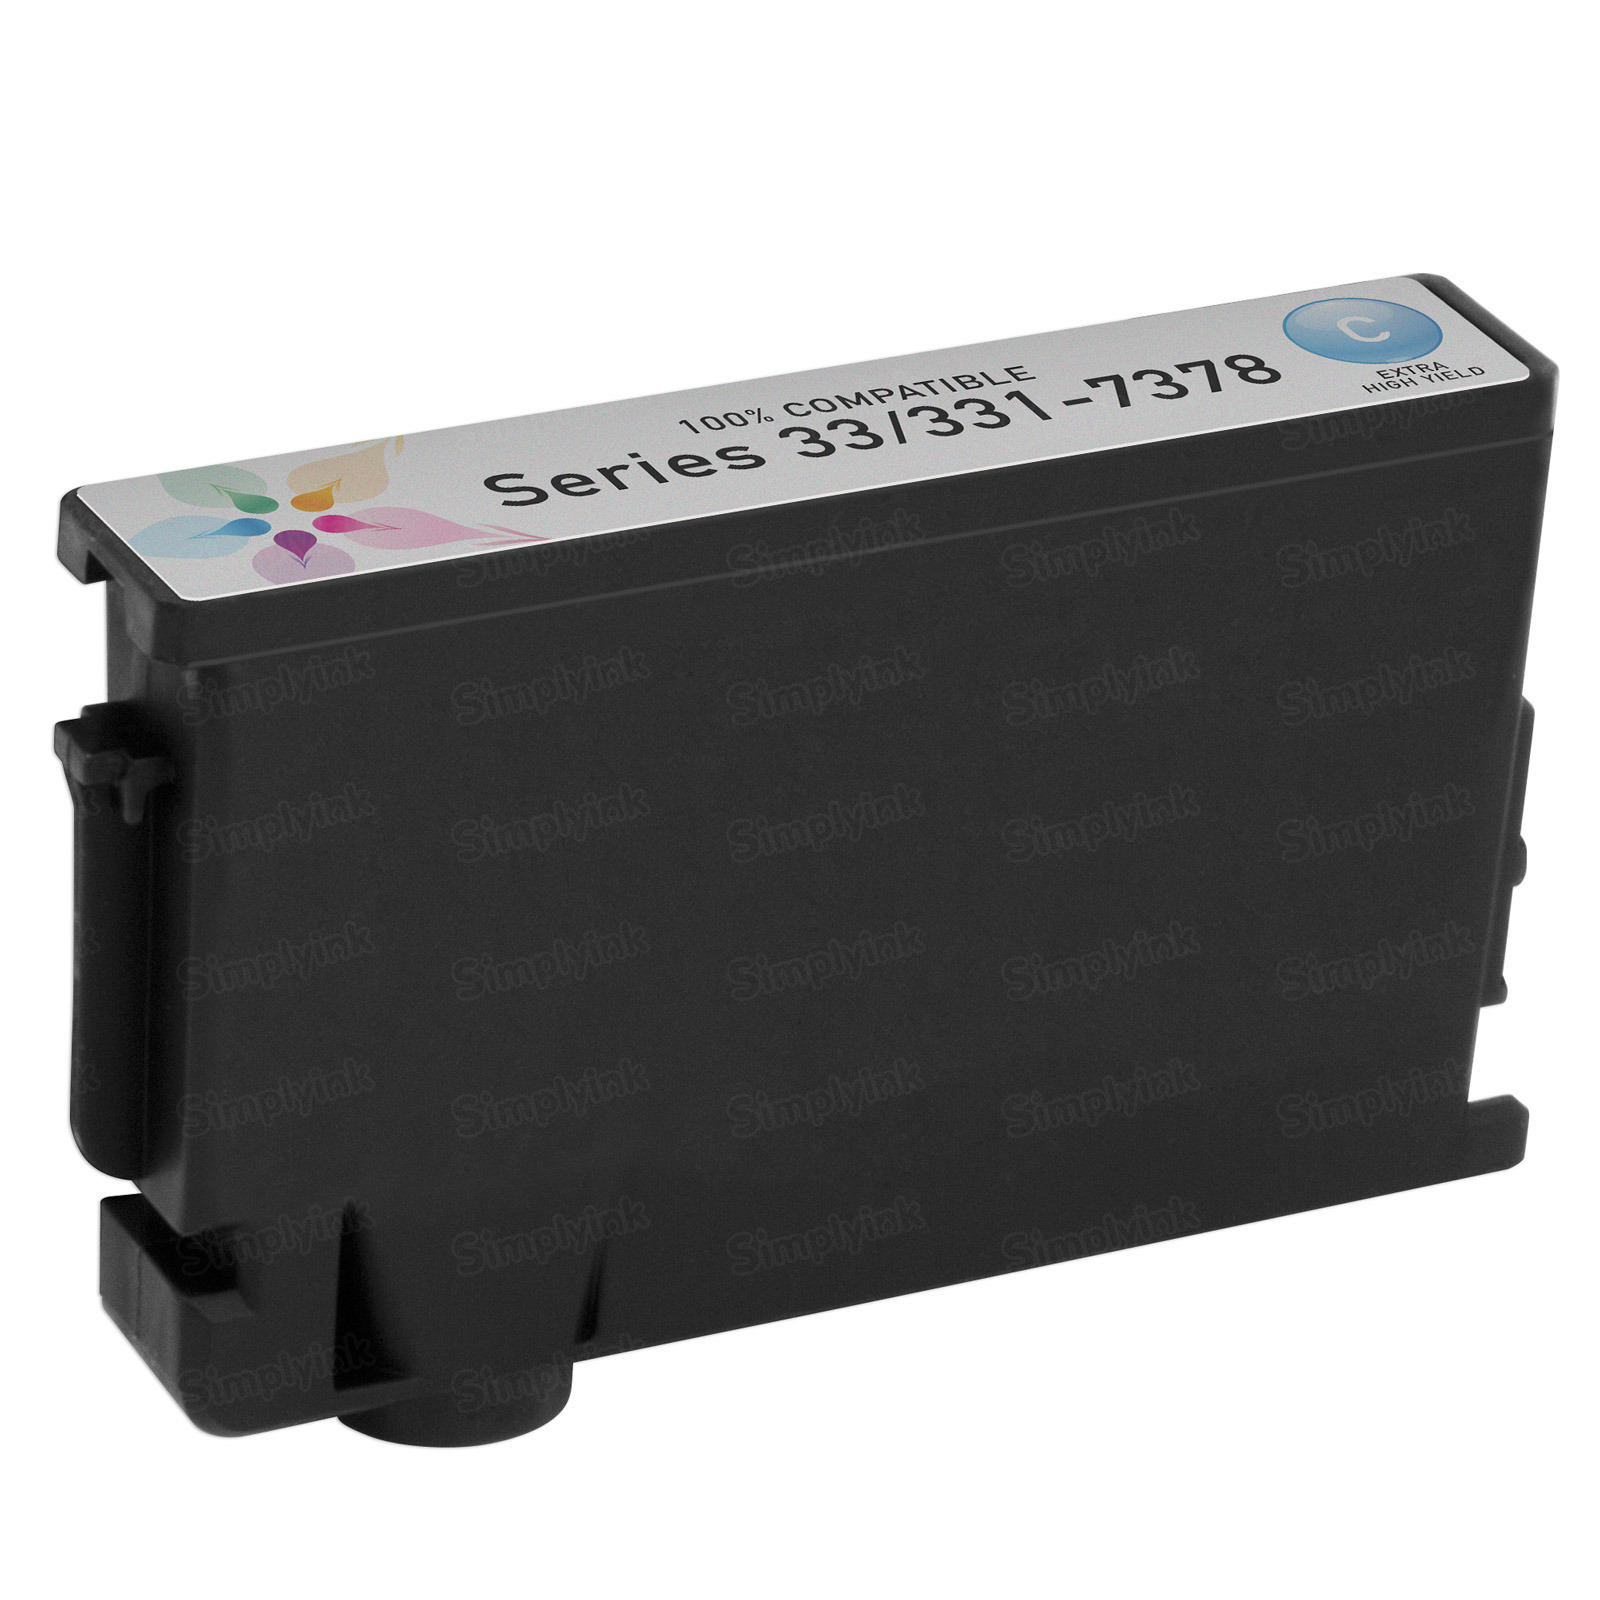 Compatible Ink Cartridge for Dell 331-7378 Extra HY Cyan Series 33